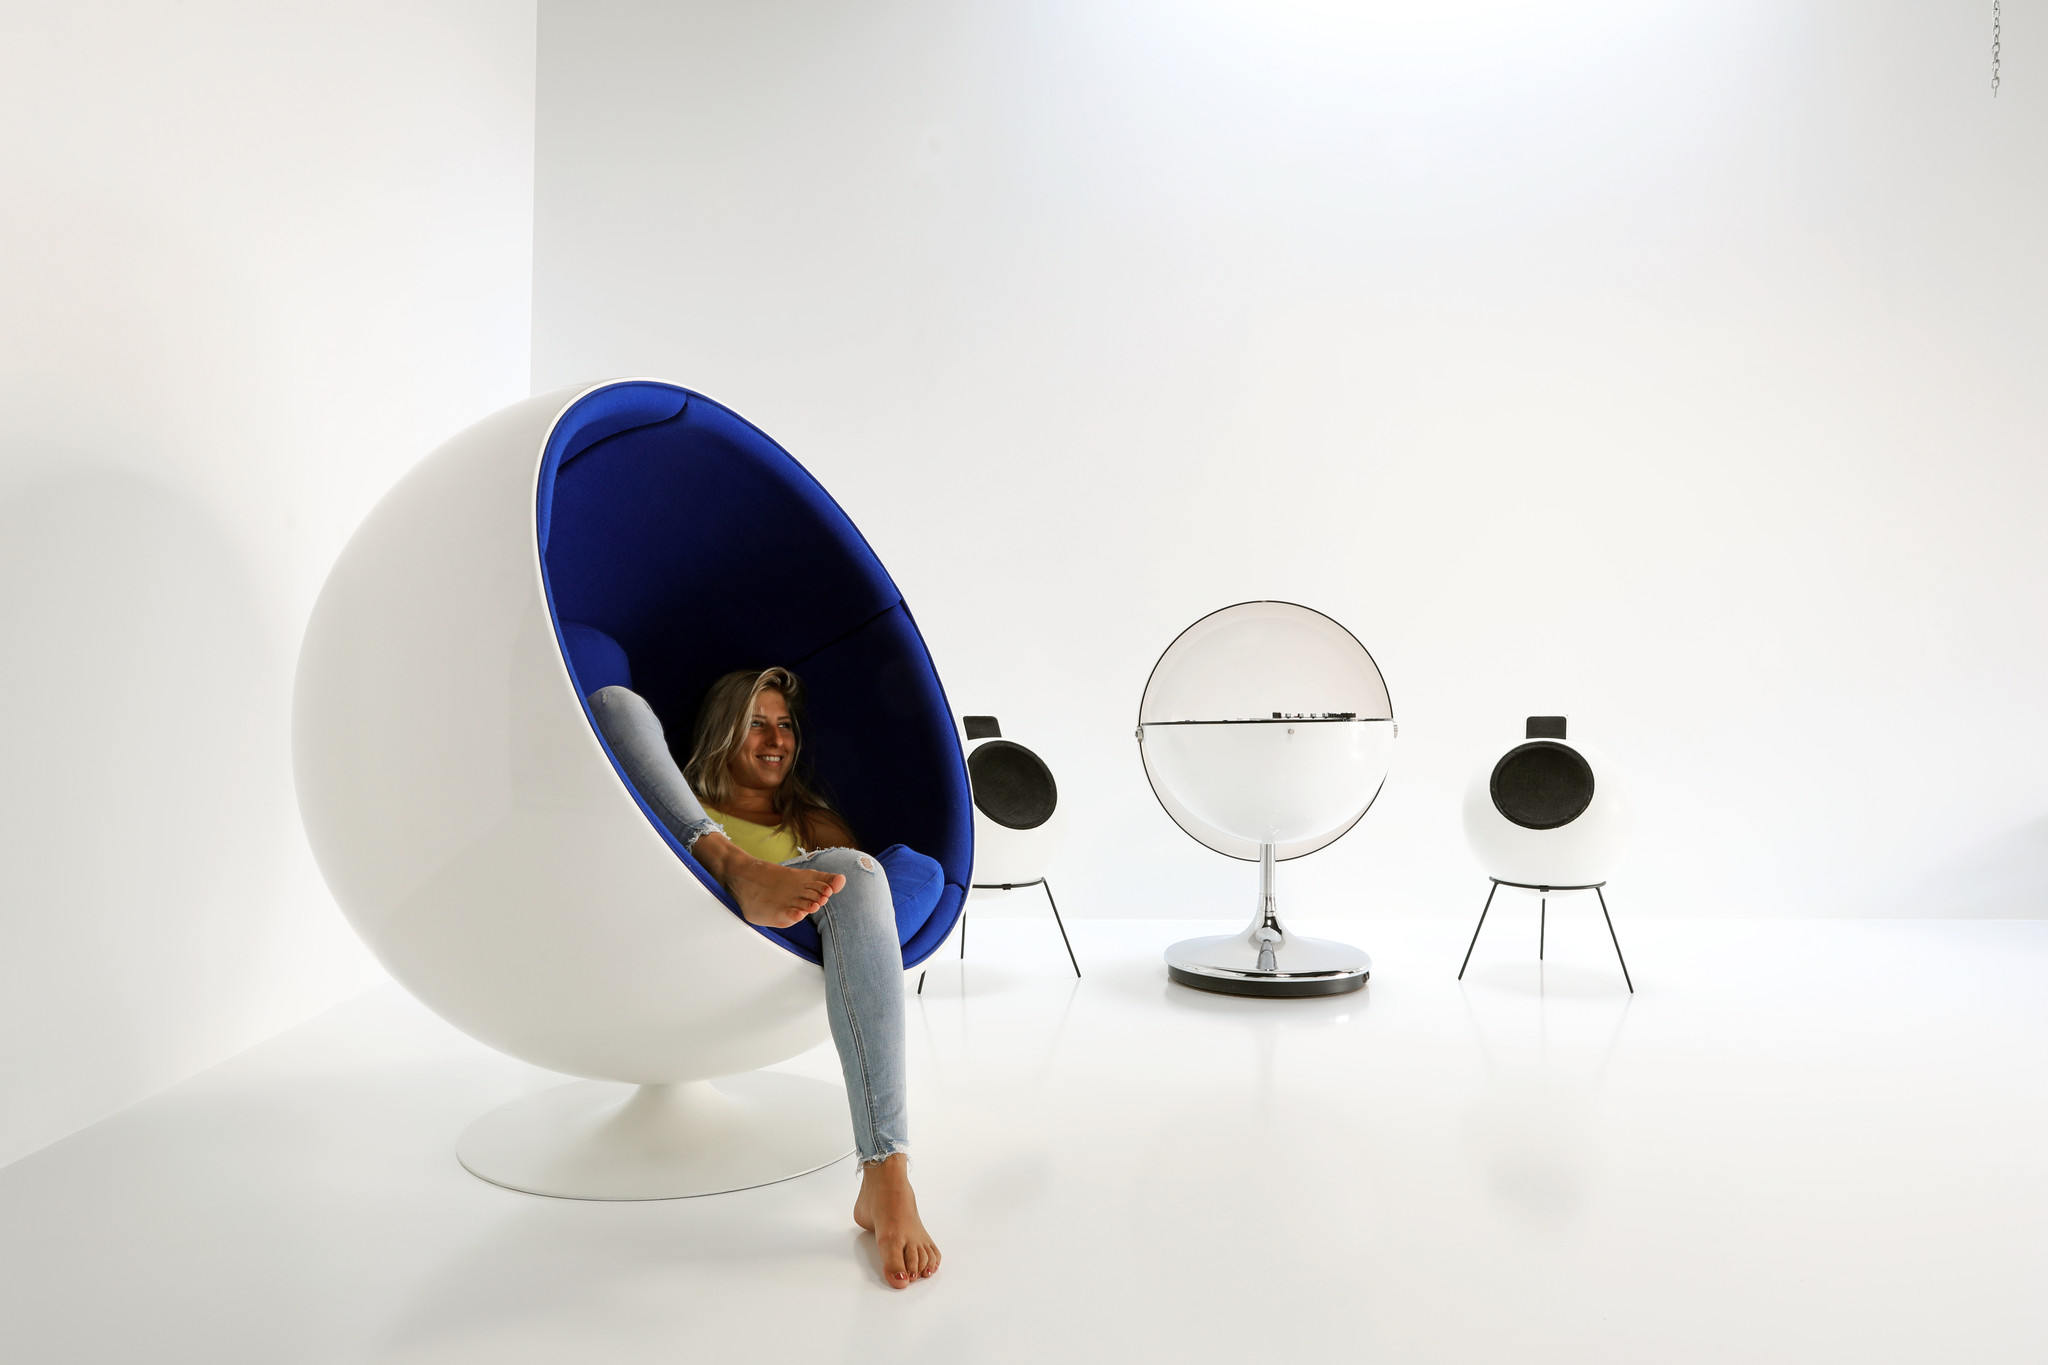 The Ball Chair was designed by Eero Aarnio for Adelta.